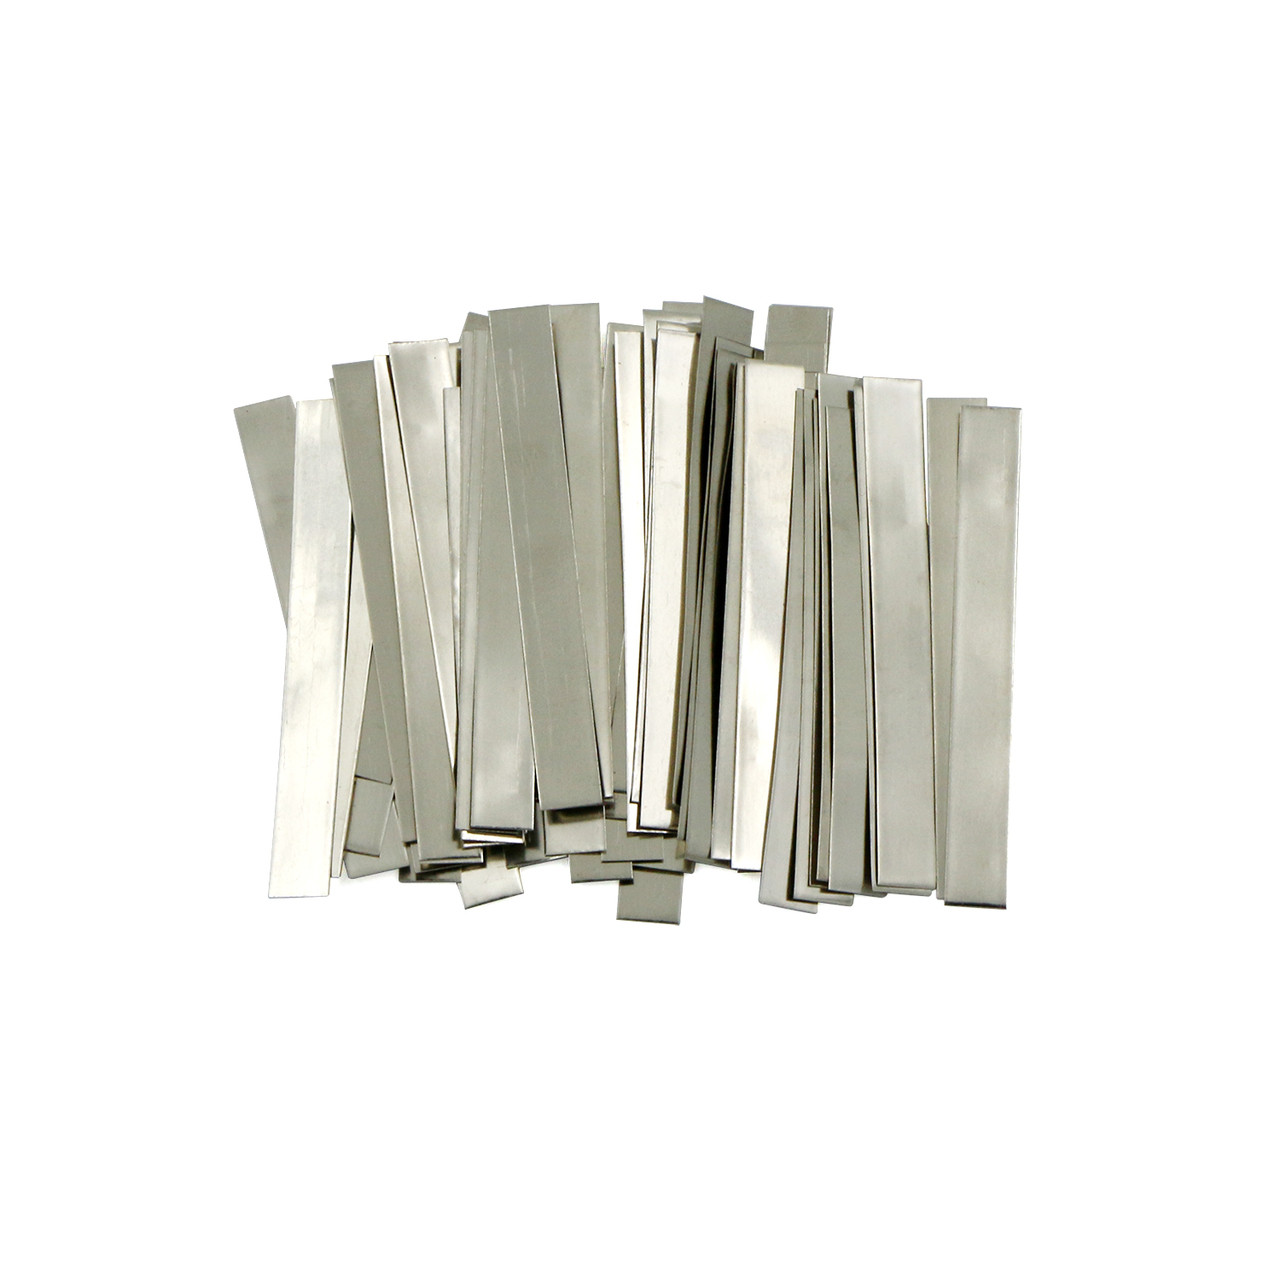 Pure Nickel Strip Solder Tabs for High Capacity 18650 Lithium Battery Packs